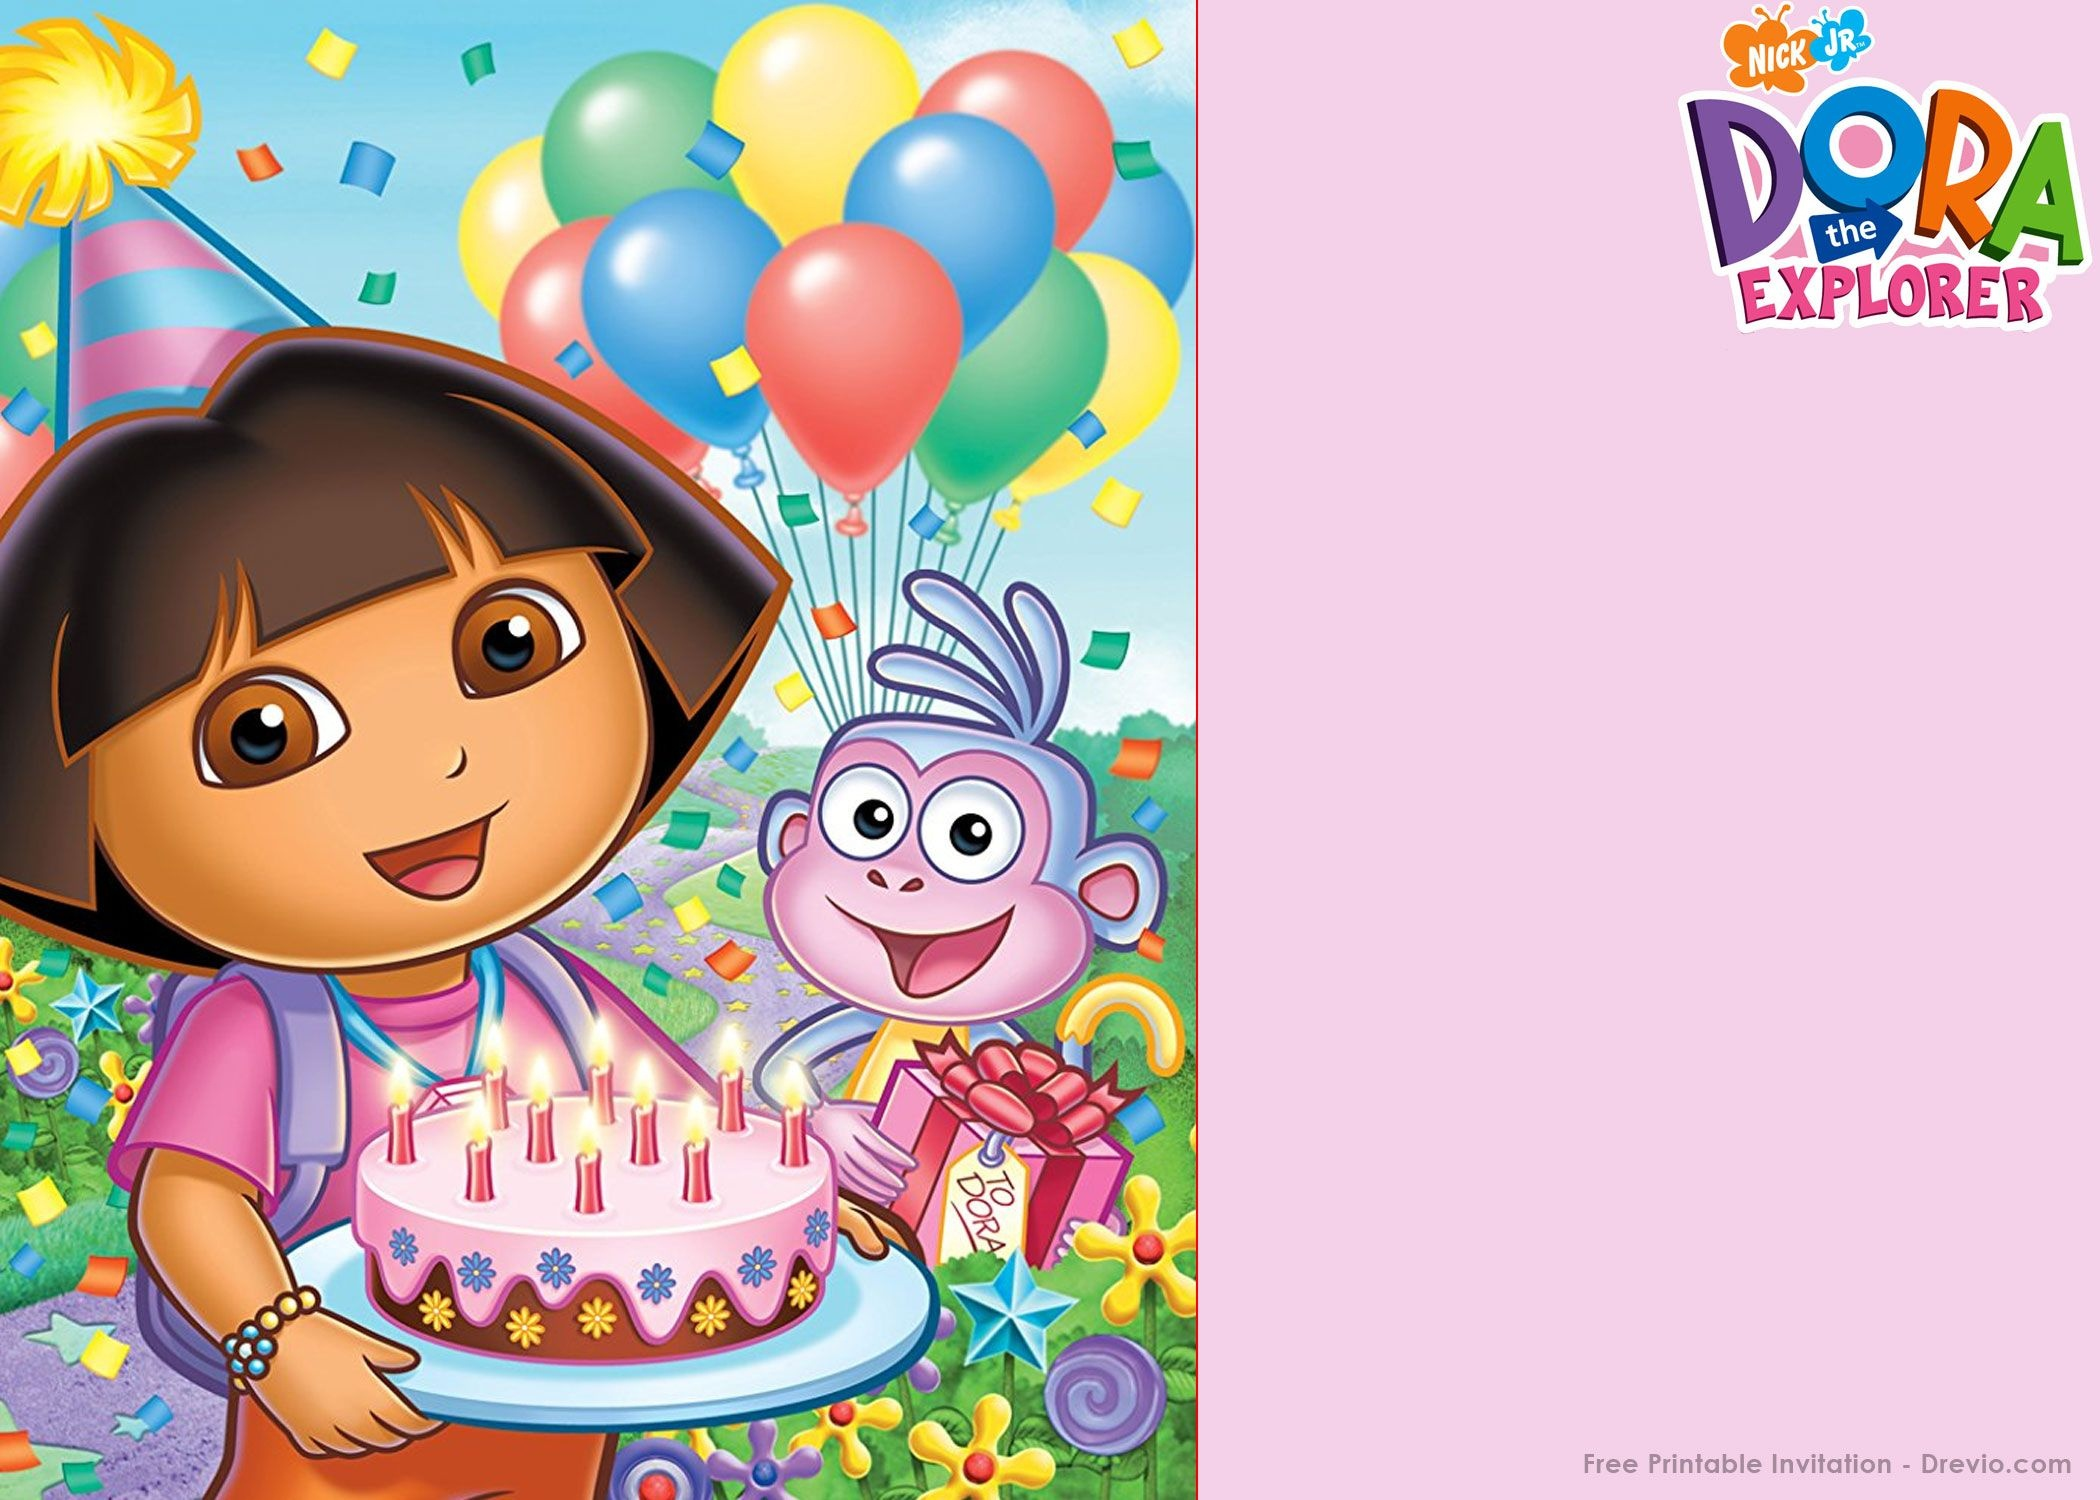 Free Printable Dora The Explorer Party Invitation | Birthday - Dora The Explorer Free Printable Invitations